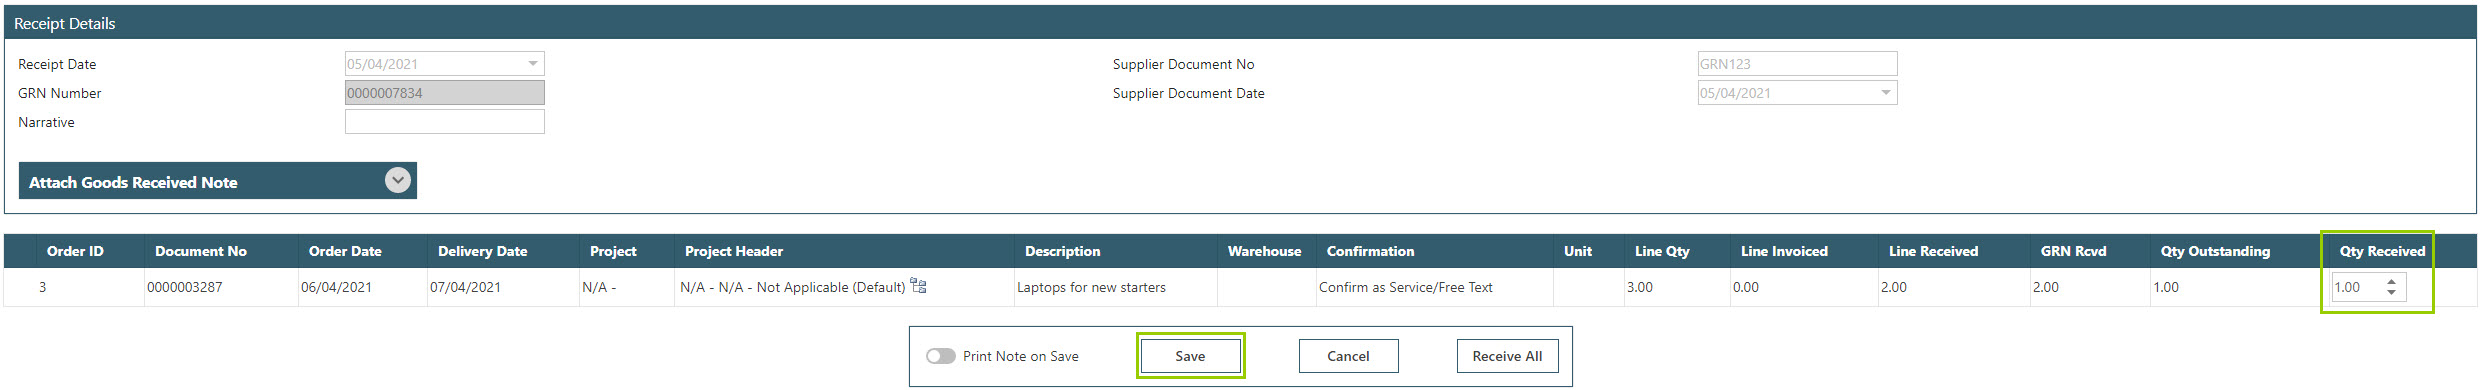 Sicon WAP Purchase Requisitions Help and User Guide - Requisition HUG Section 10.3 Image 2